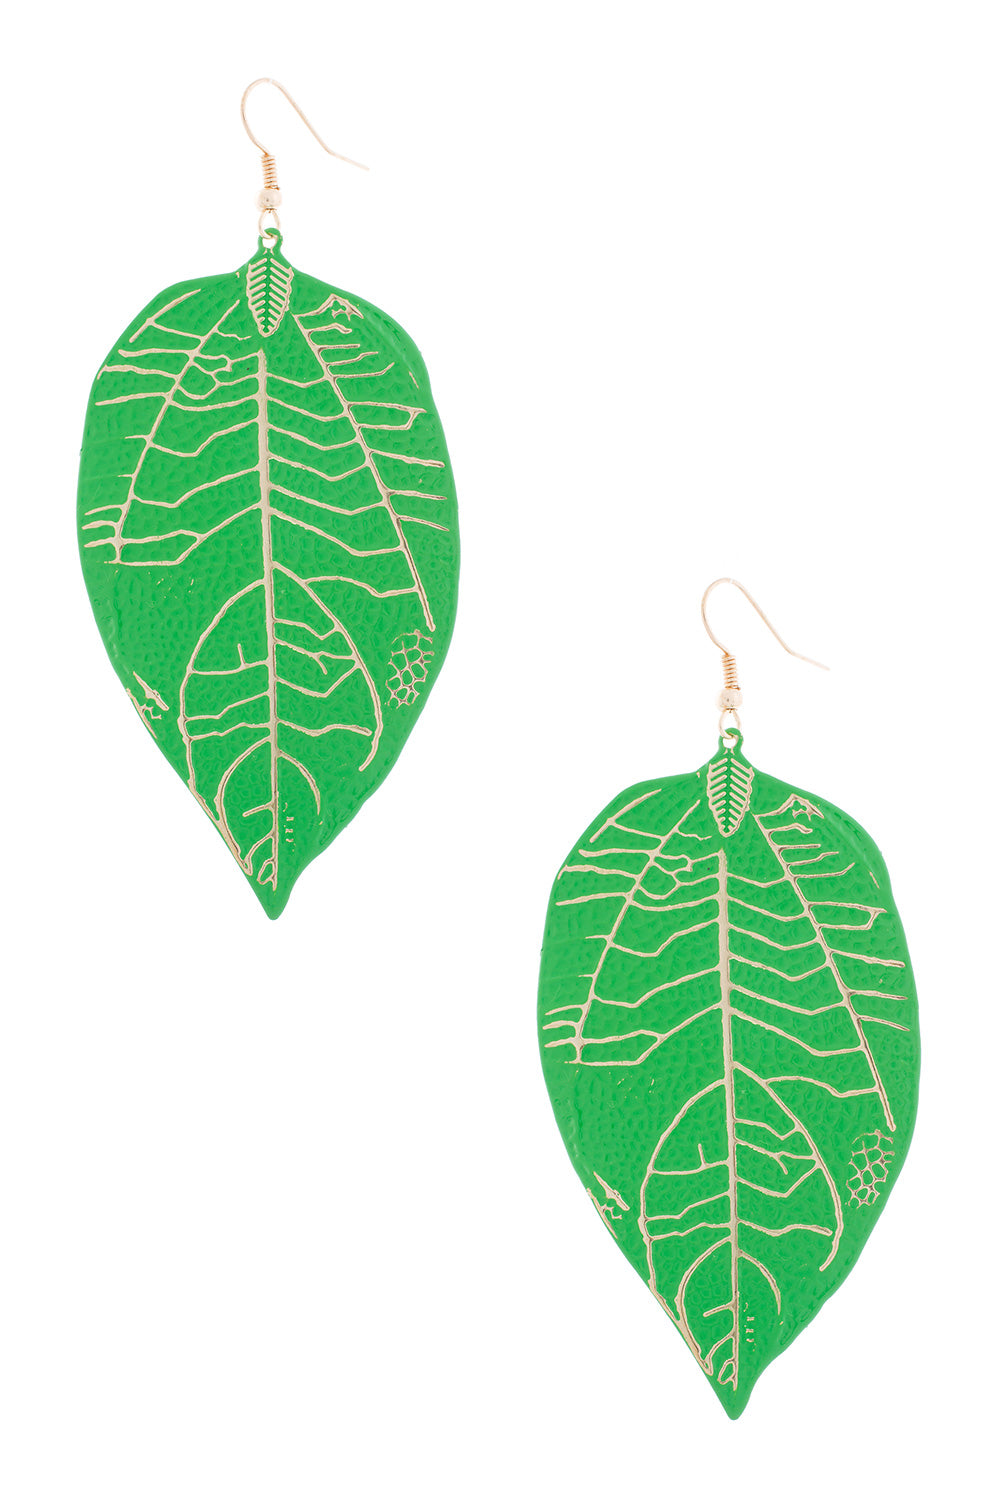 Type 3 Green Leaf, Gold Veins Earrings